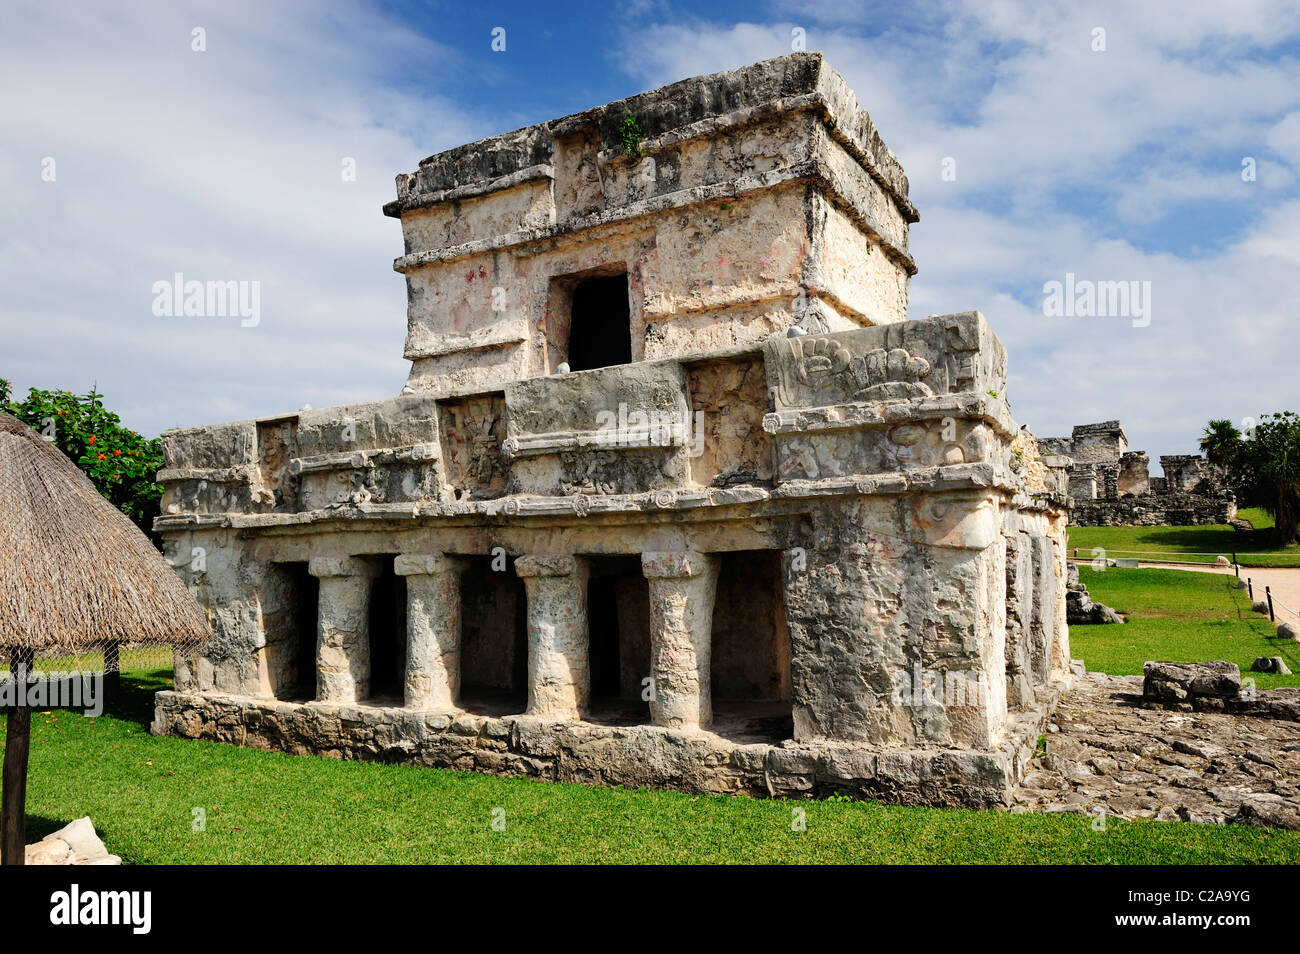 Temple of the Frescoes at Tulum, Quintana Roo, Mexico - Stock Image